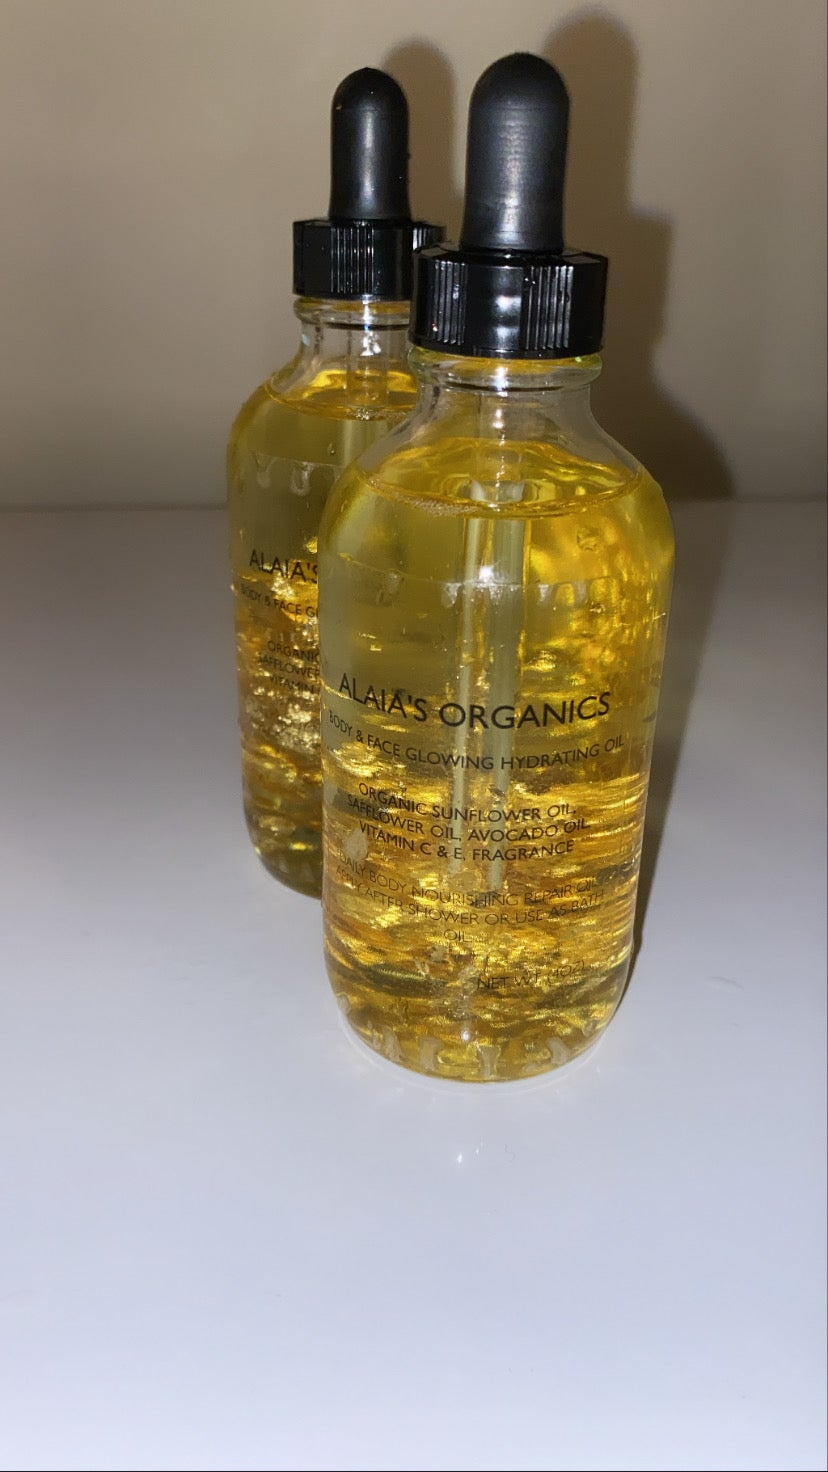 Image of Serenity Face & Body Oil